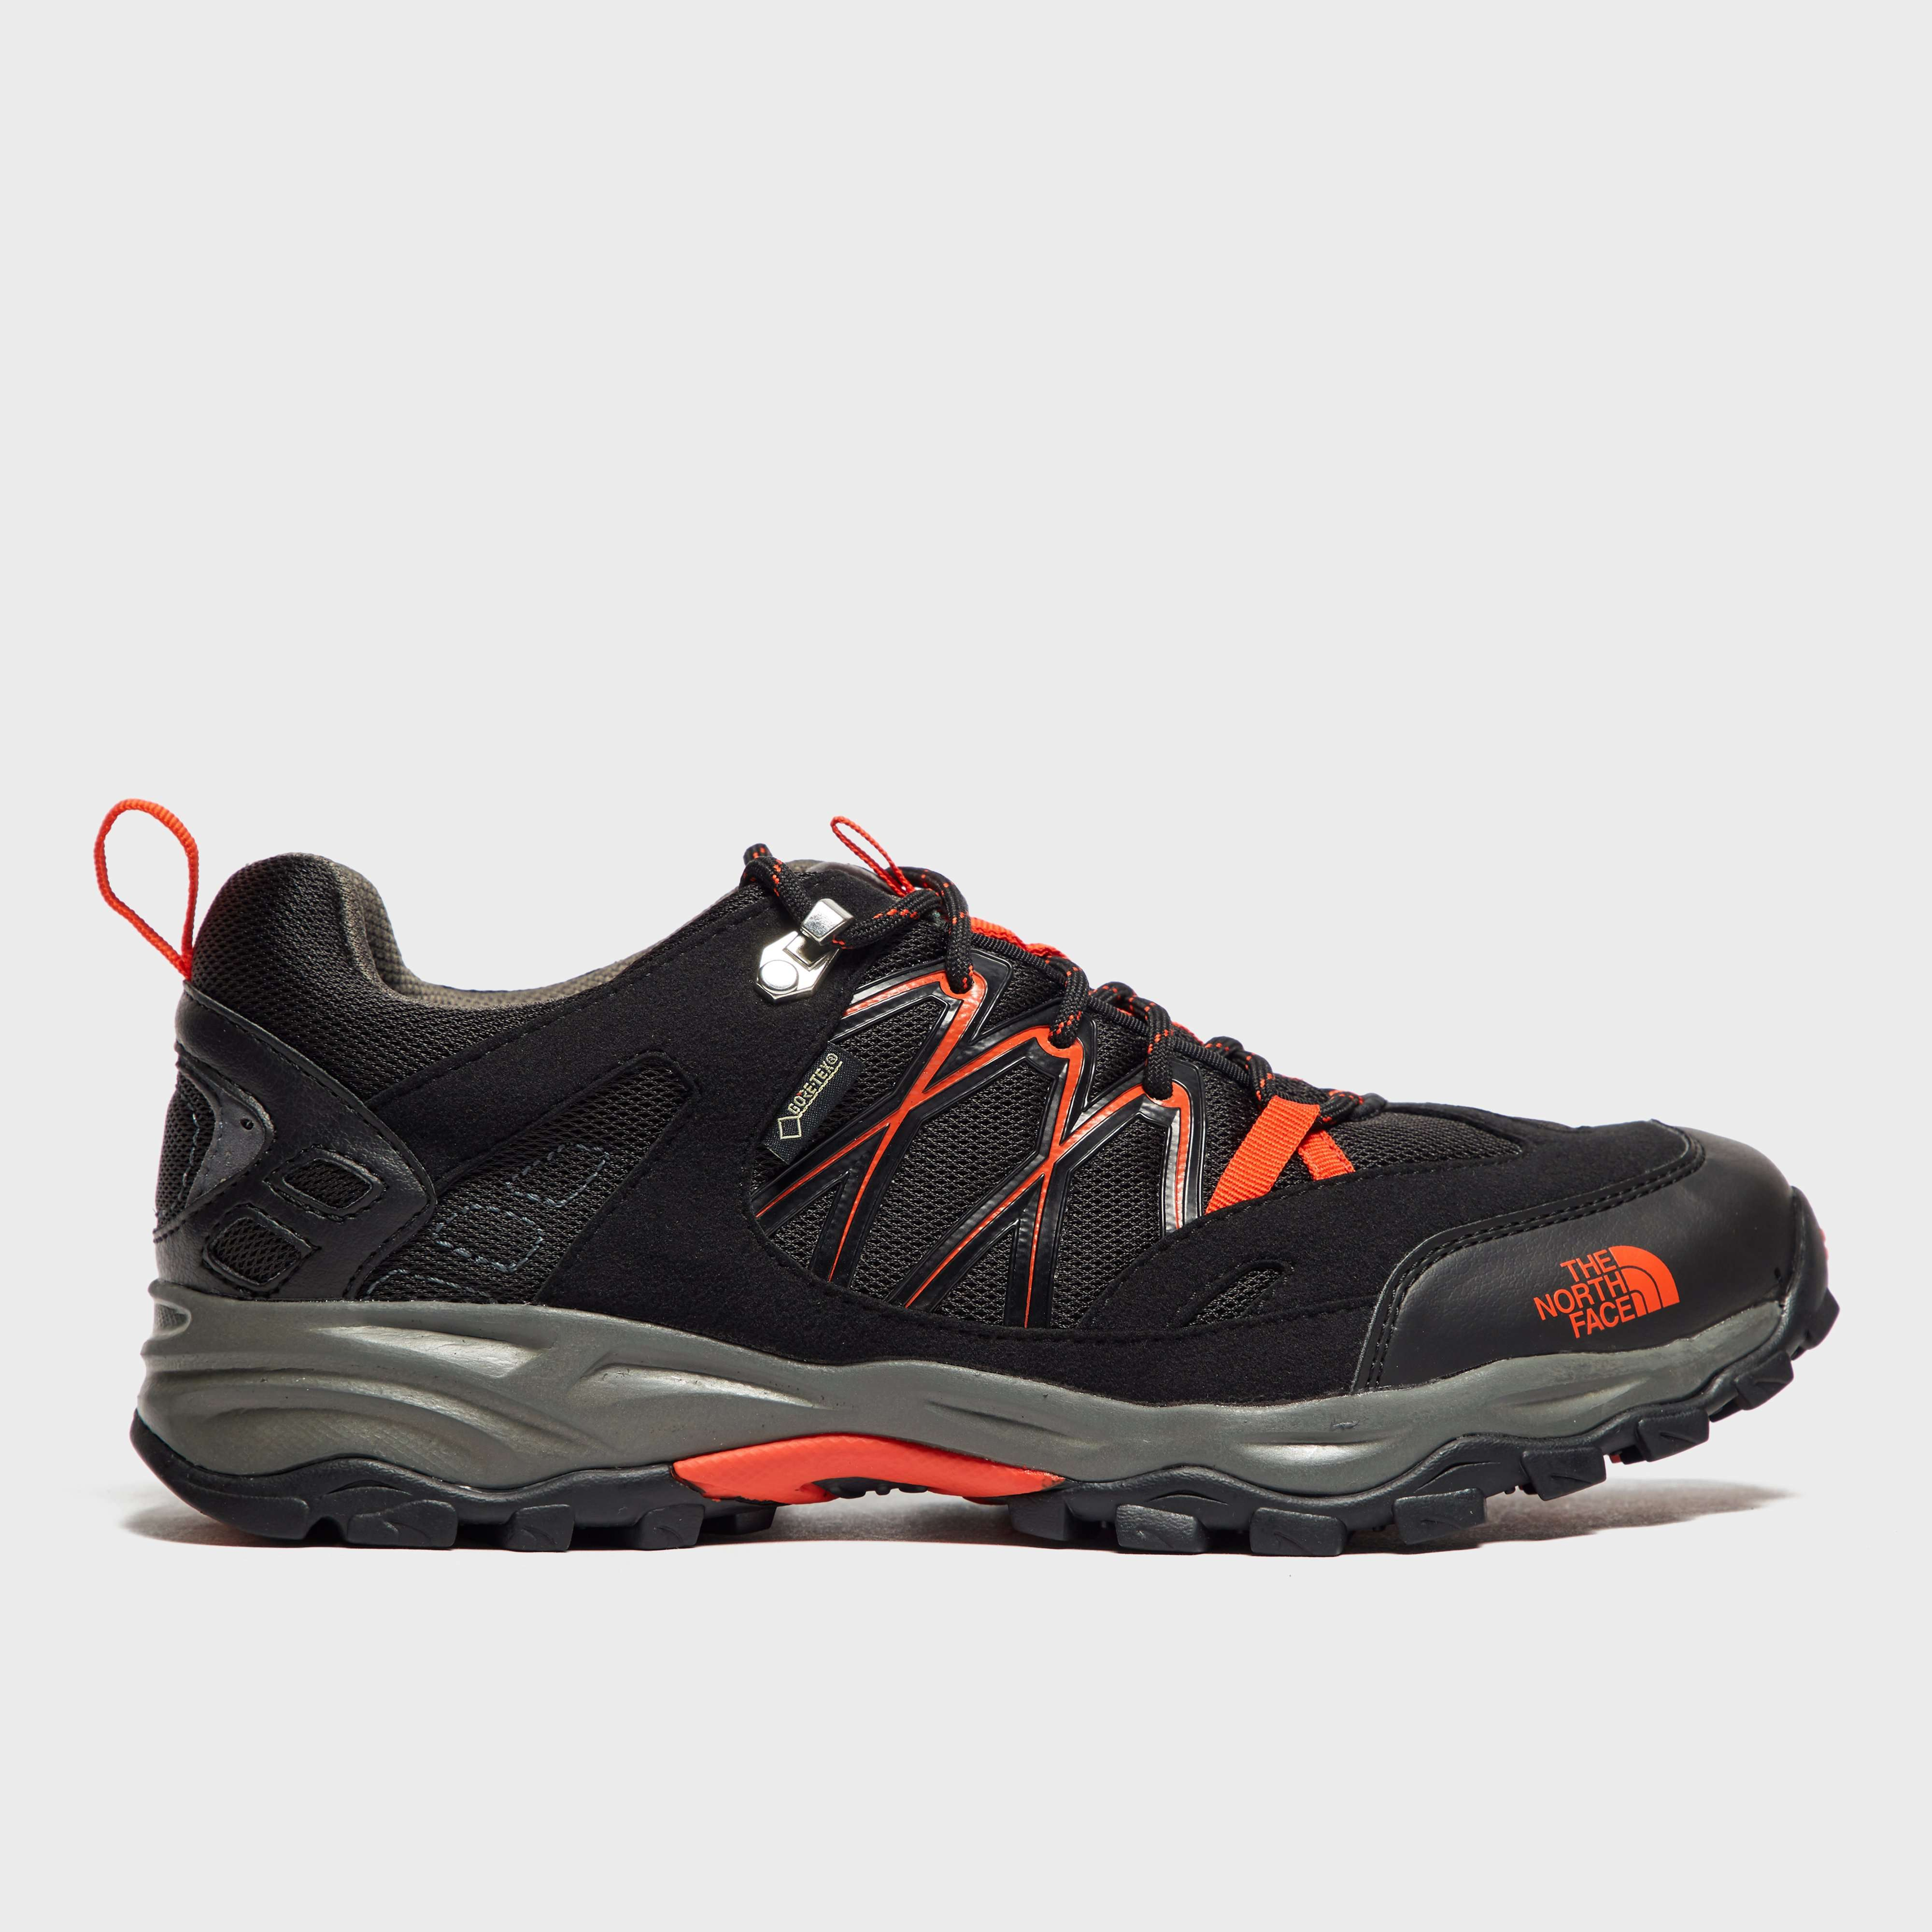 THE NORTH FACE Men's Terra GORE-TEX® Hiking Shoe